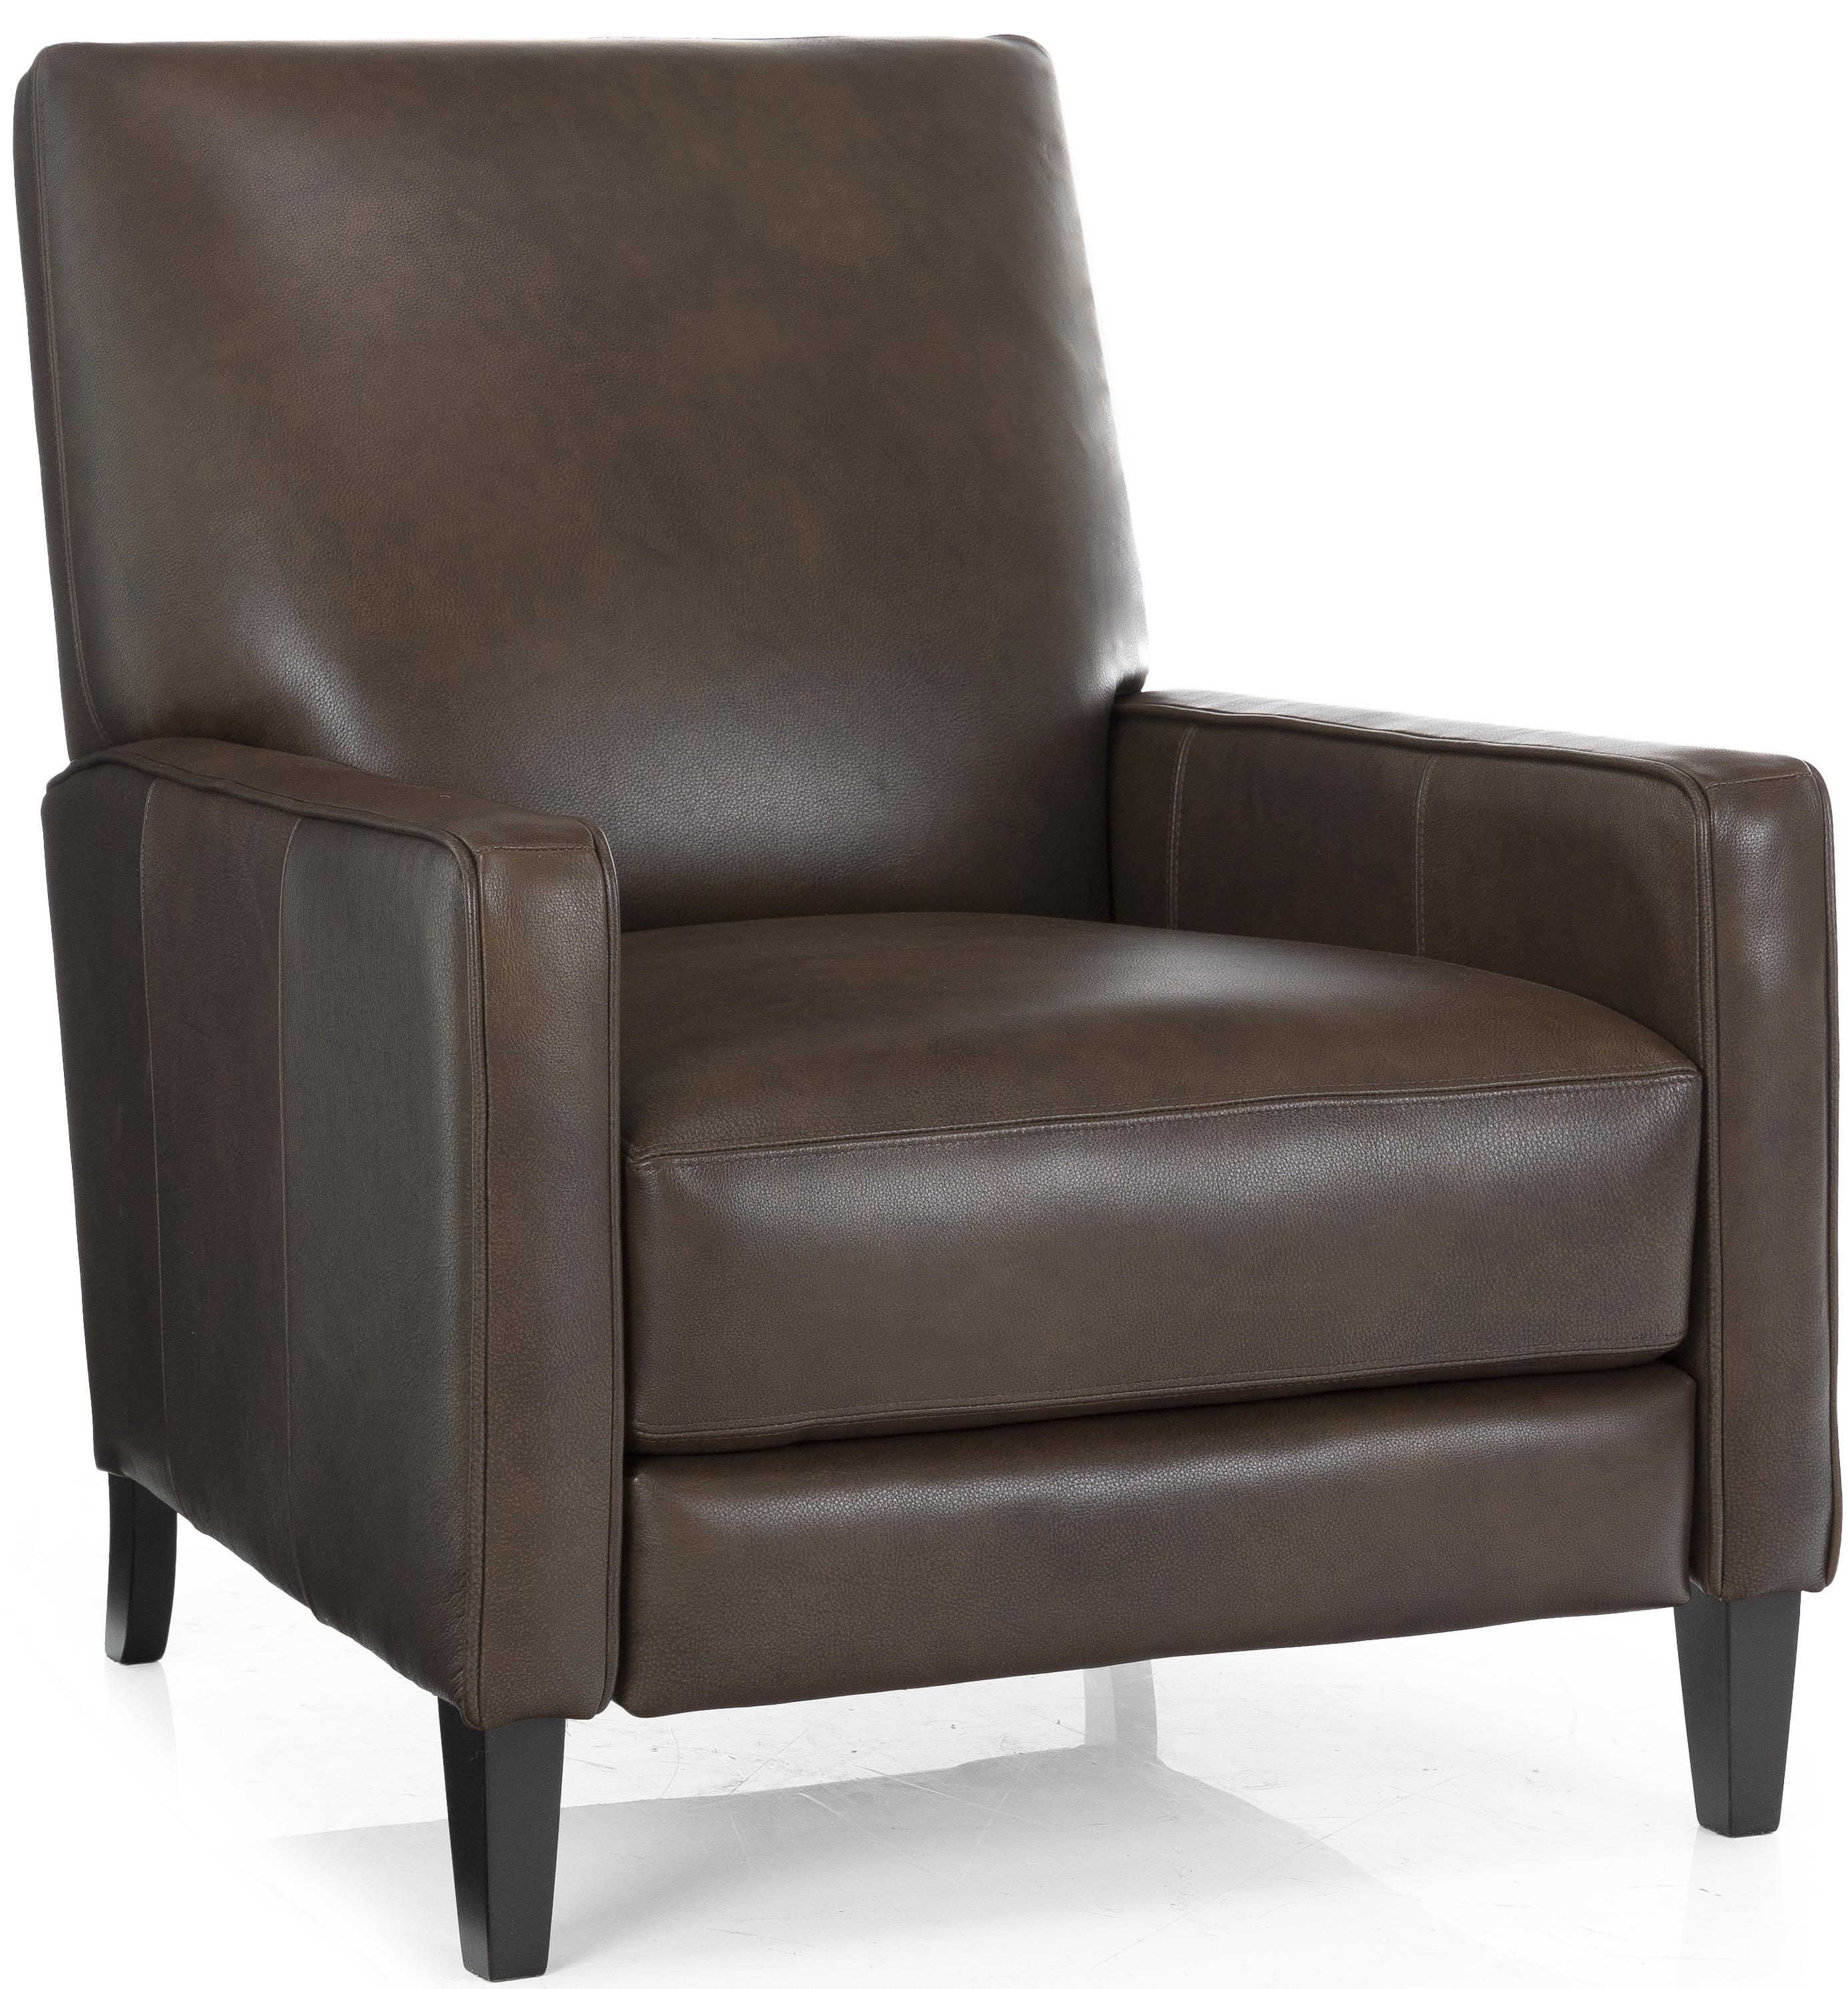 7312 Power Reclining Chair by Decor-Rest at Reid's Furniture